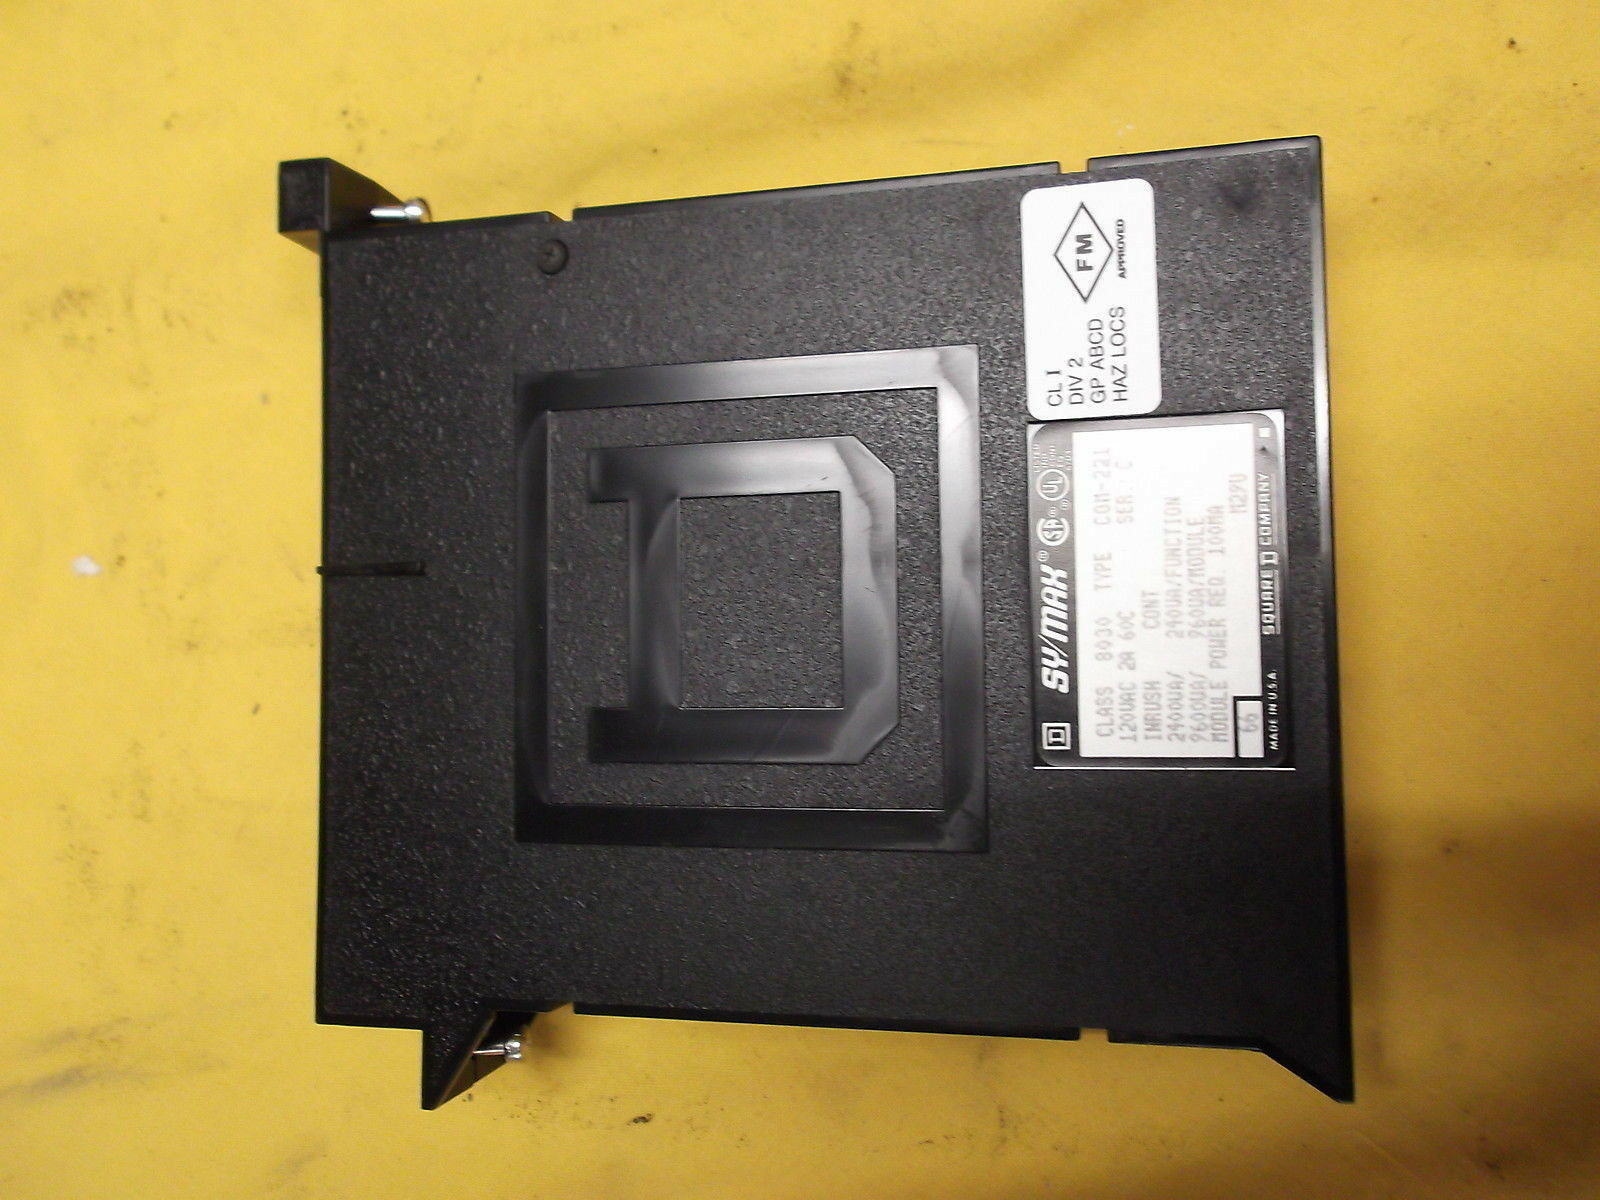 PROGRAMABLE CONTROLLER SQUARE D TYPE COM-221 SERIES C  CLASS 8030 MADE BY SYMAX